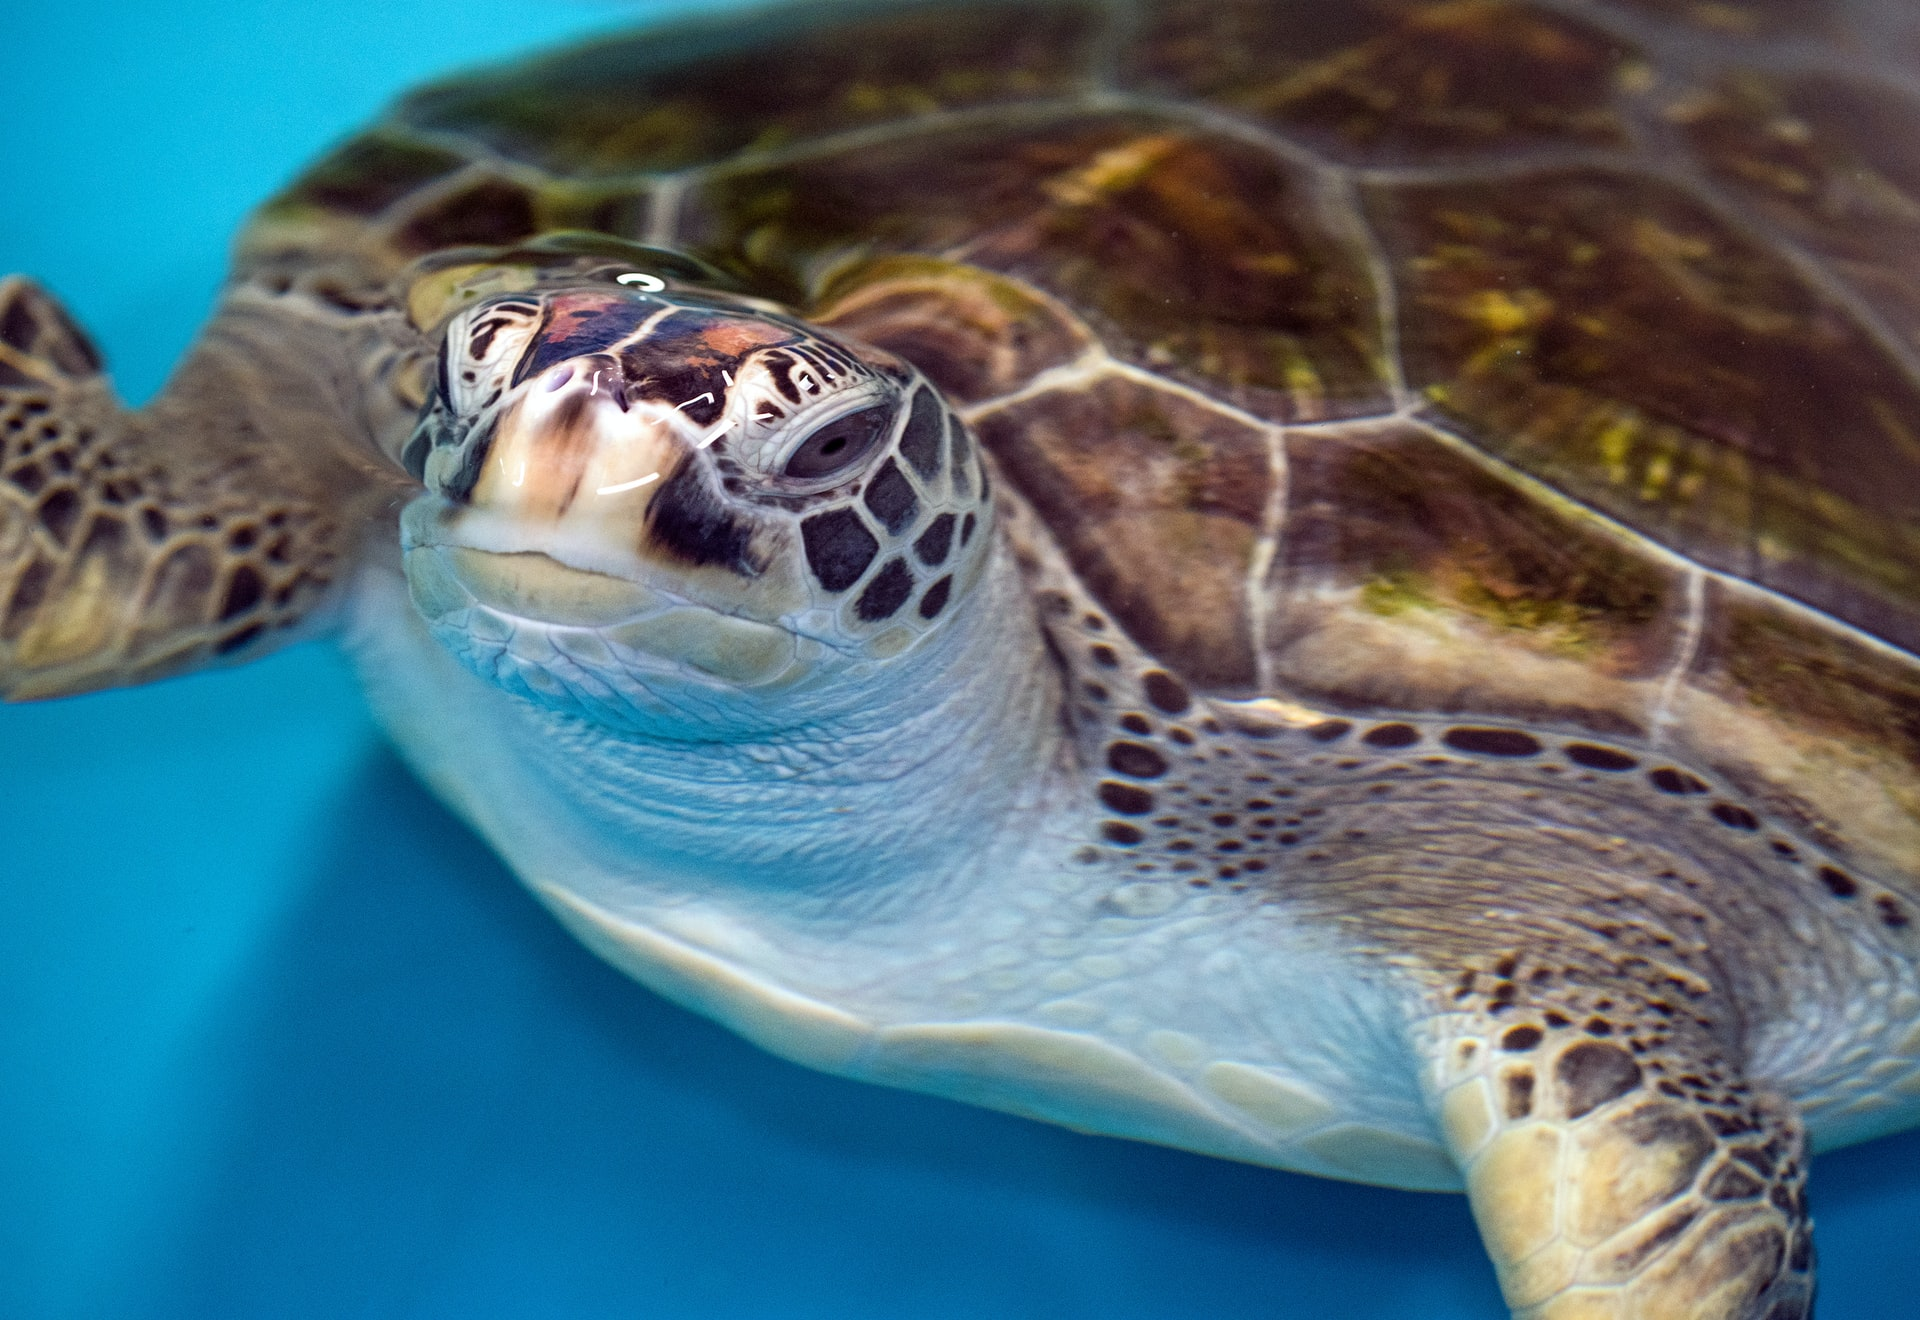 The Adventures of Shell-ock Holmes: A case of green sea turtles